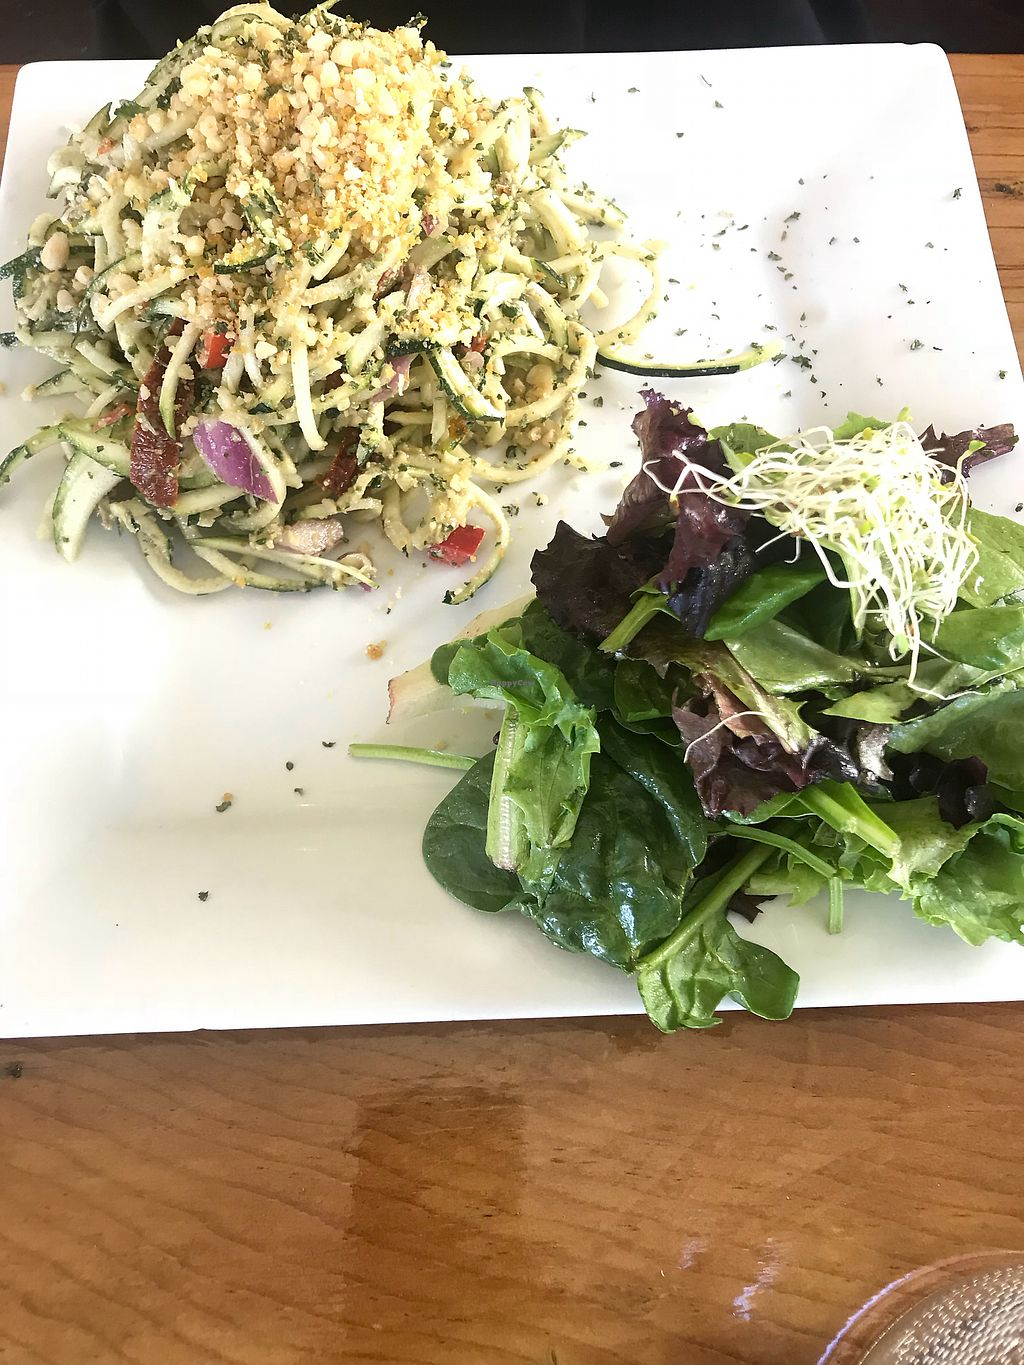 "Photo of The Present Moment Cafe and Market  by <a href=""/members/profile/IndreArbataityte"">IndreArbataityte</a> <br/>Zucchini noodles  <br/> May 27, 2018  - <a href='/contact/abuse/image/9044/405847'>Report</a>"